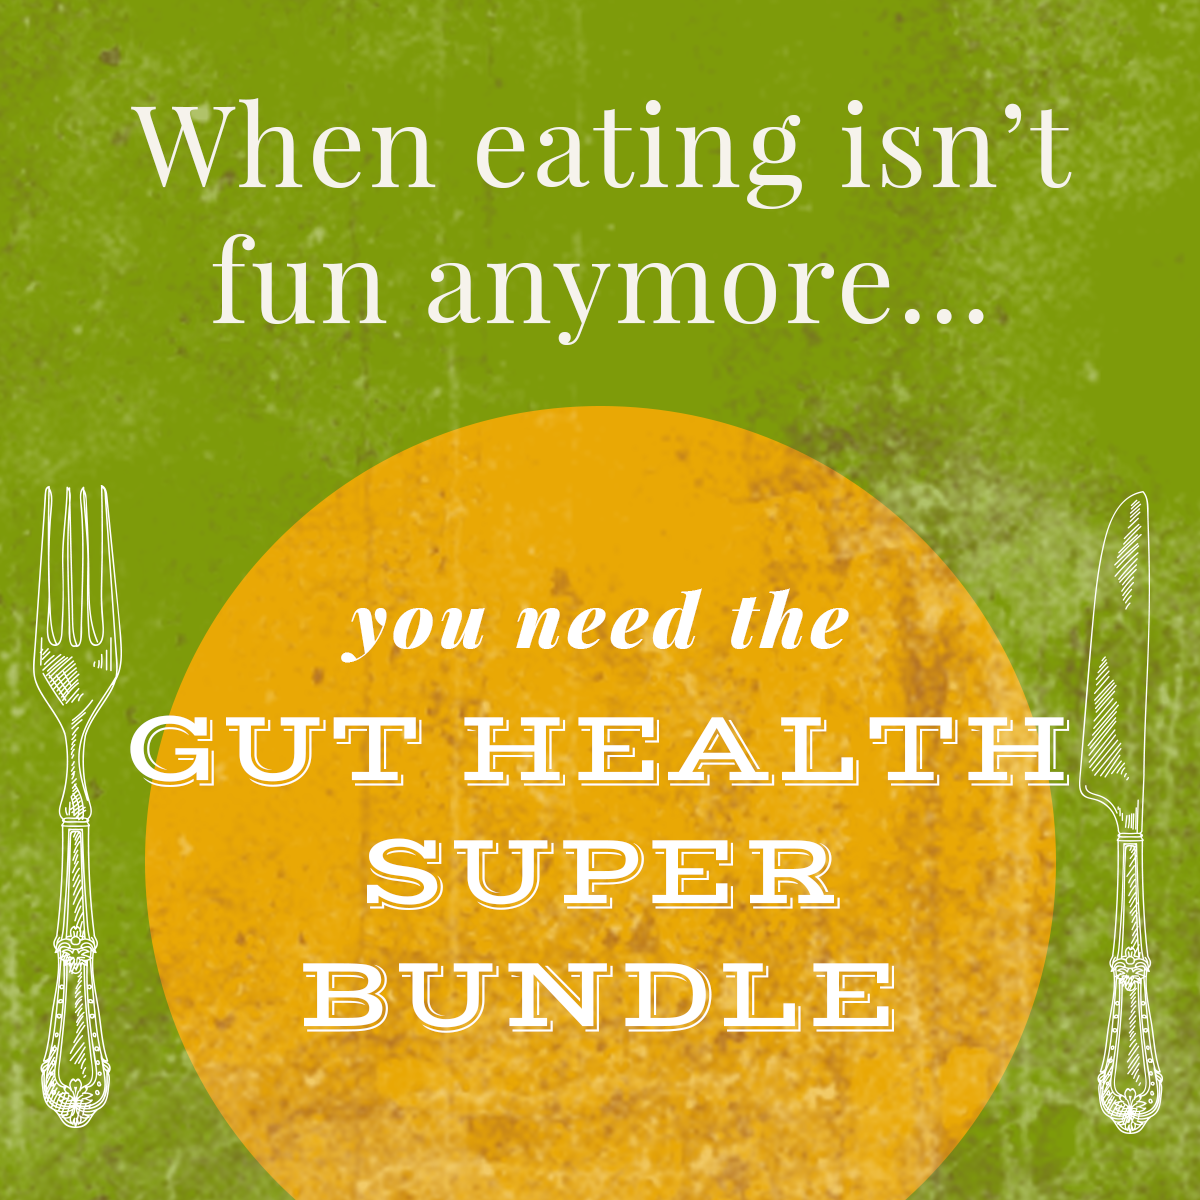 Get the Gut Health Super Bundle!